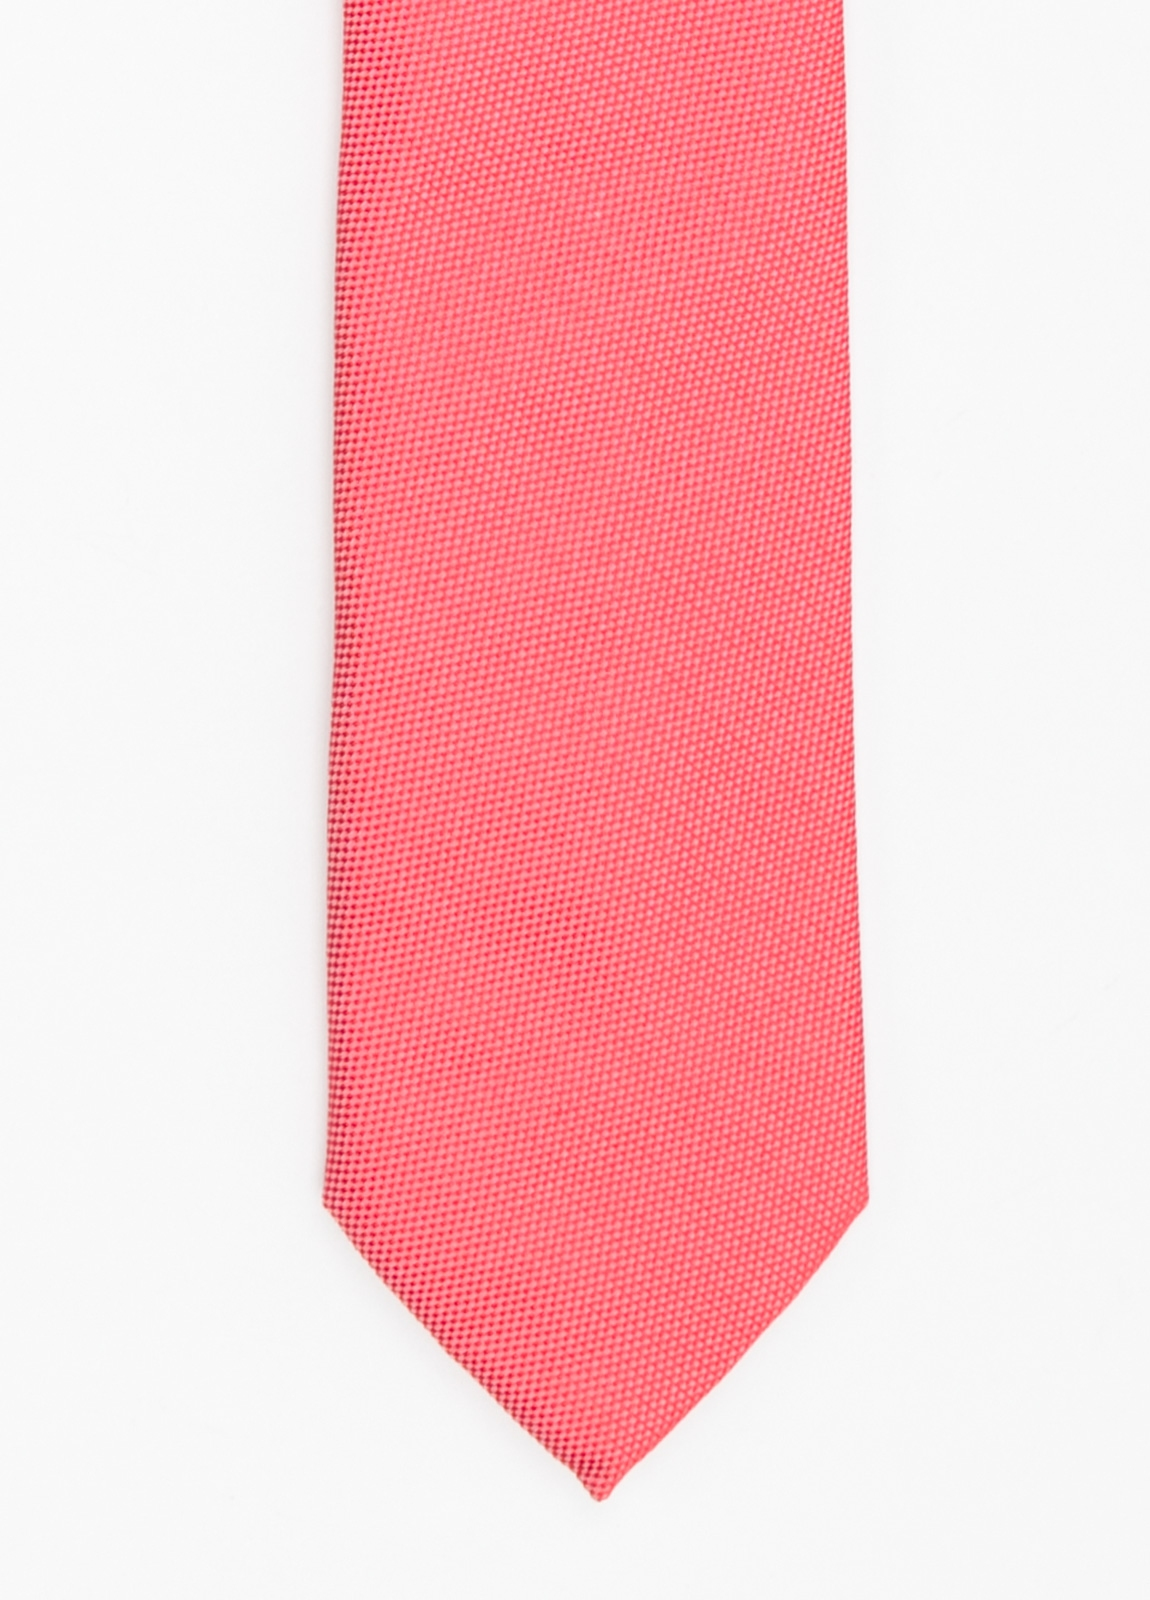 Corbata Formal Wear microtextura color azul coral. Pala 7,5 cm. 100% Seda.